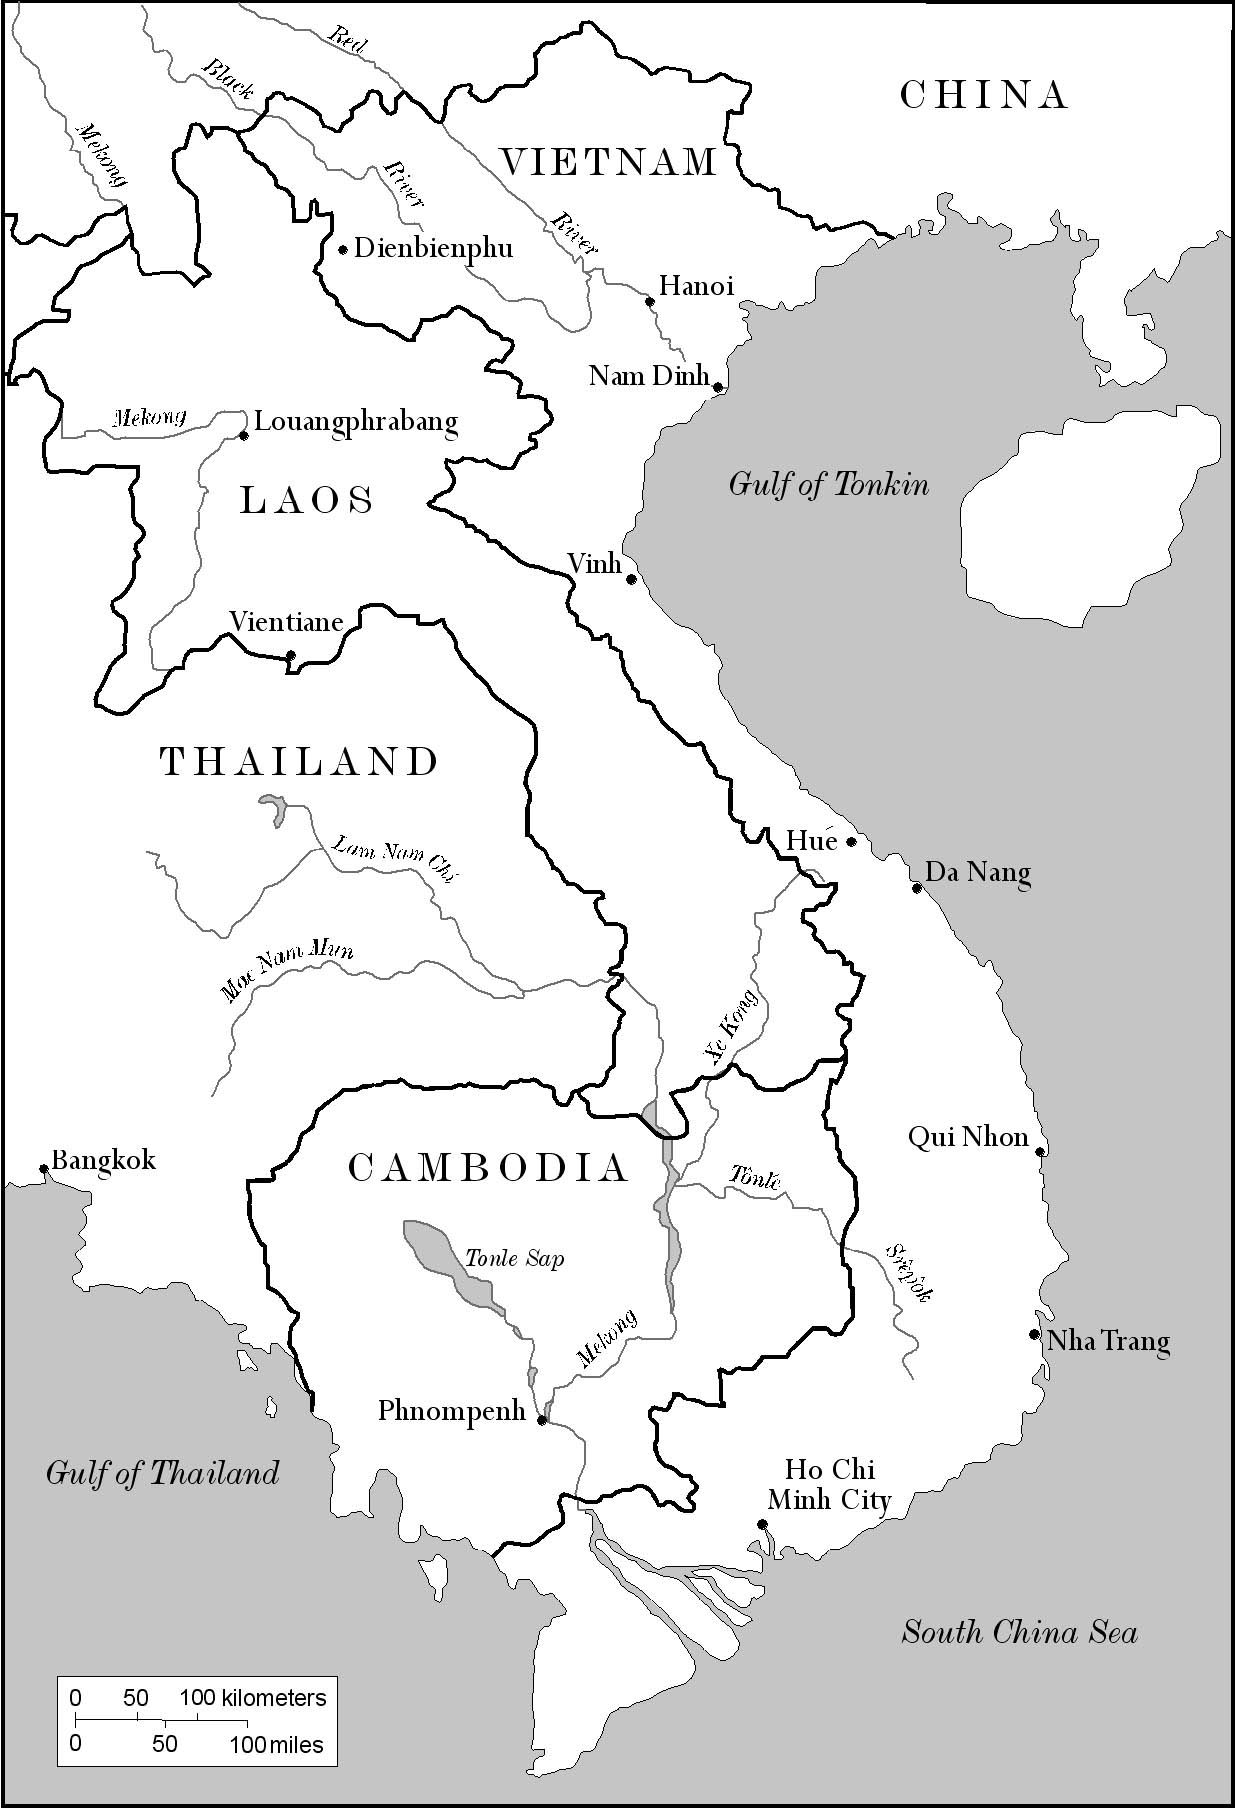 map for vietnam colouring pages | World Thinking Day | Pinterest ...